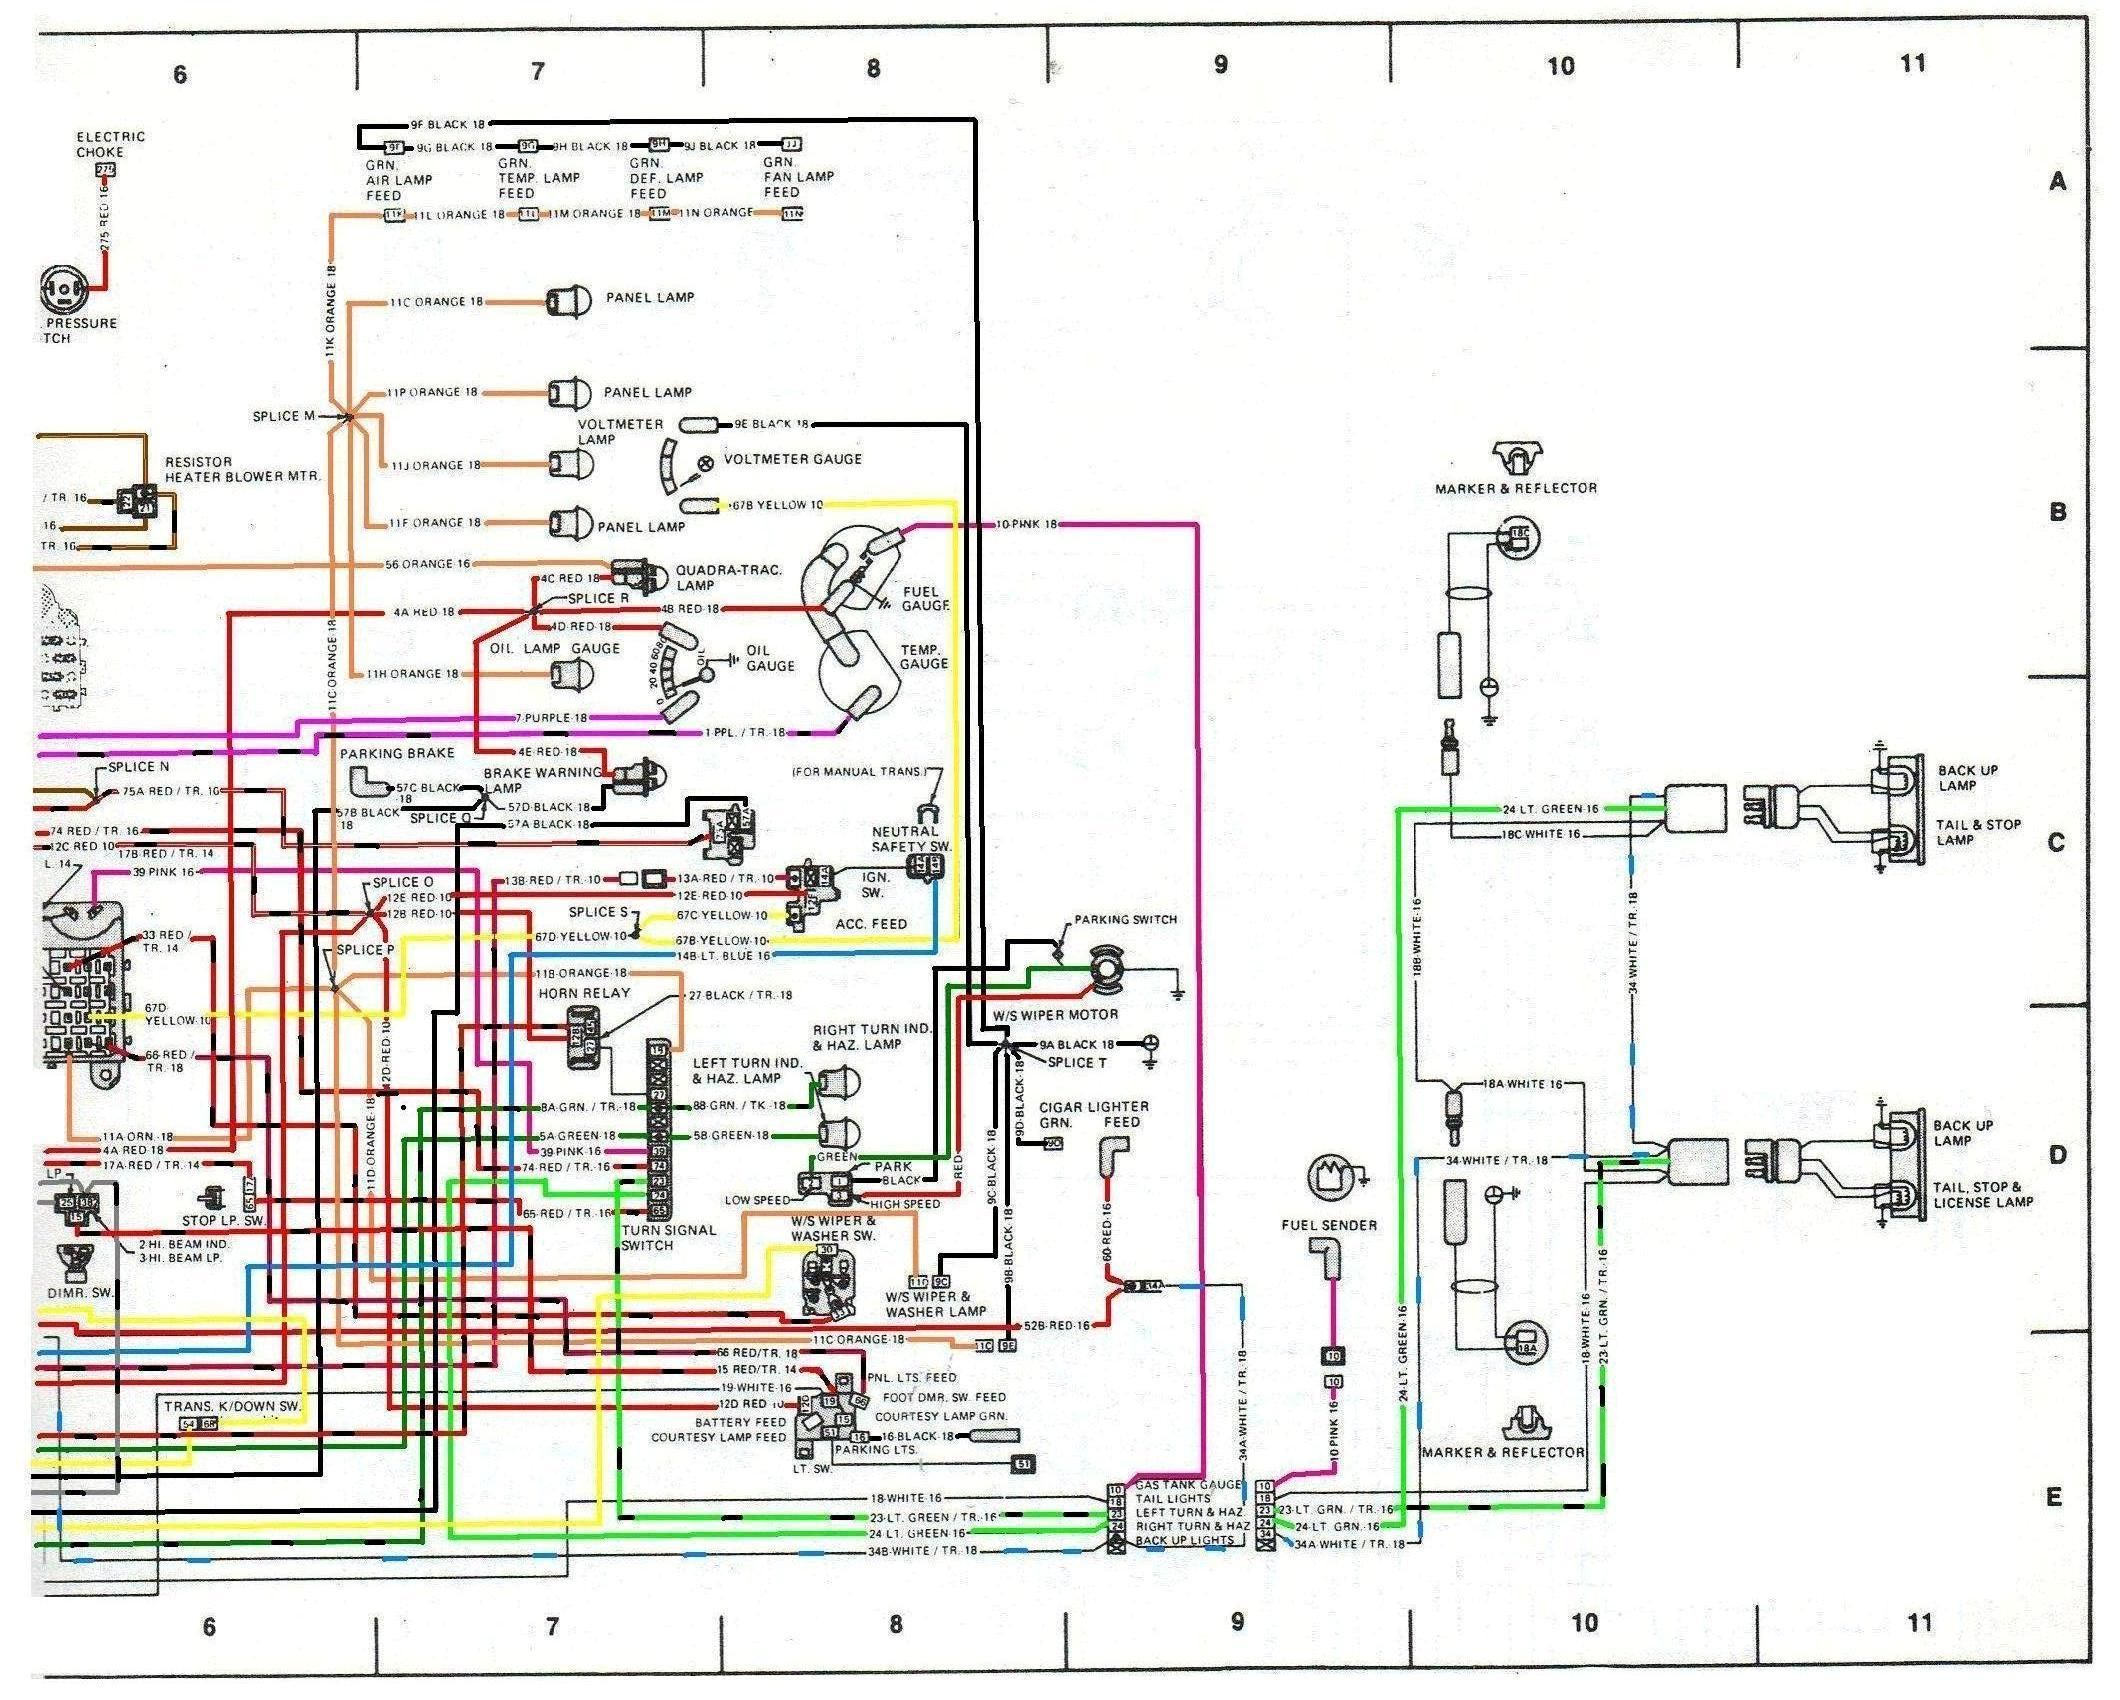 DIAGRAM] 1979 Jeep Cj7 Wiring Schematic - Goodman Hvac Capacitor Wiring  Diagram List diagramter.mon1erinstrument.frmon1erinstrument.fr